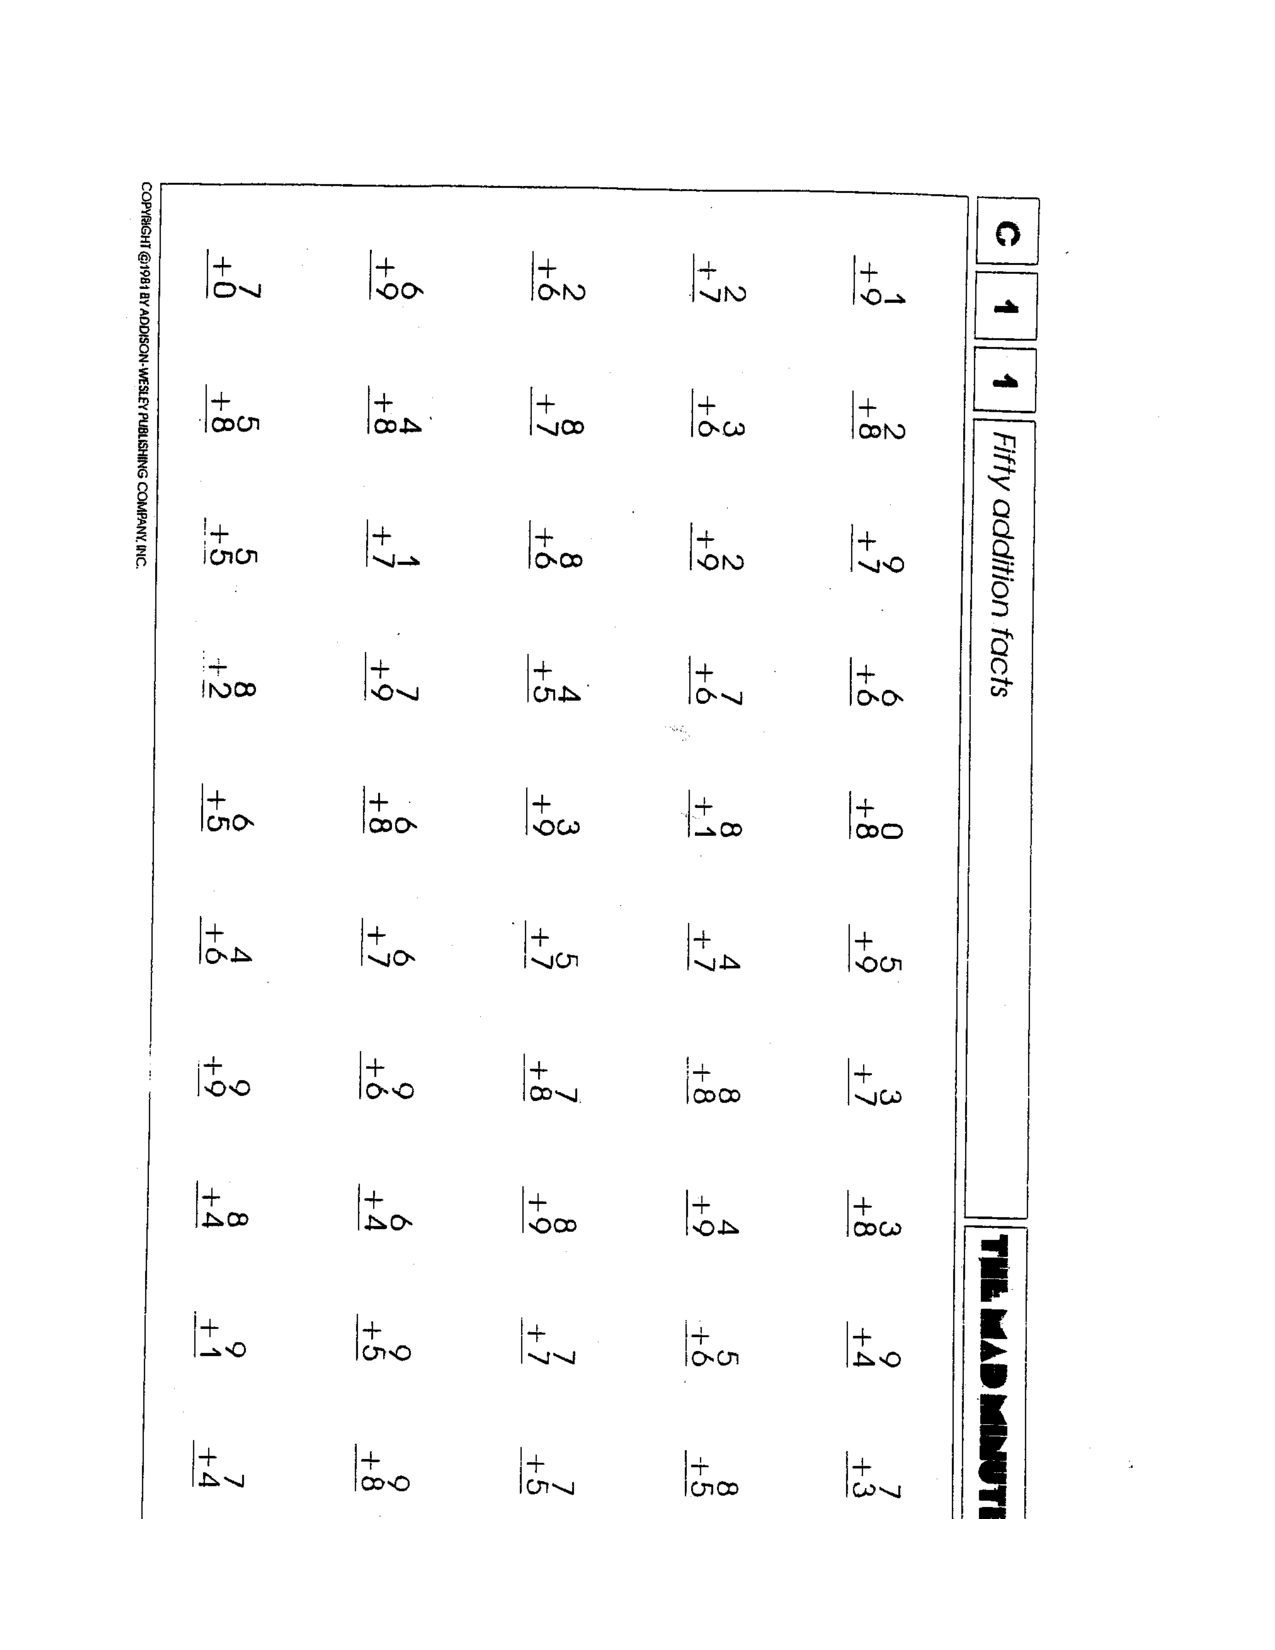 Worksheet 4th Grade Math Packets math worksheets for 4th grade fourth doc doc